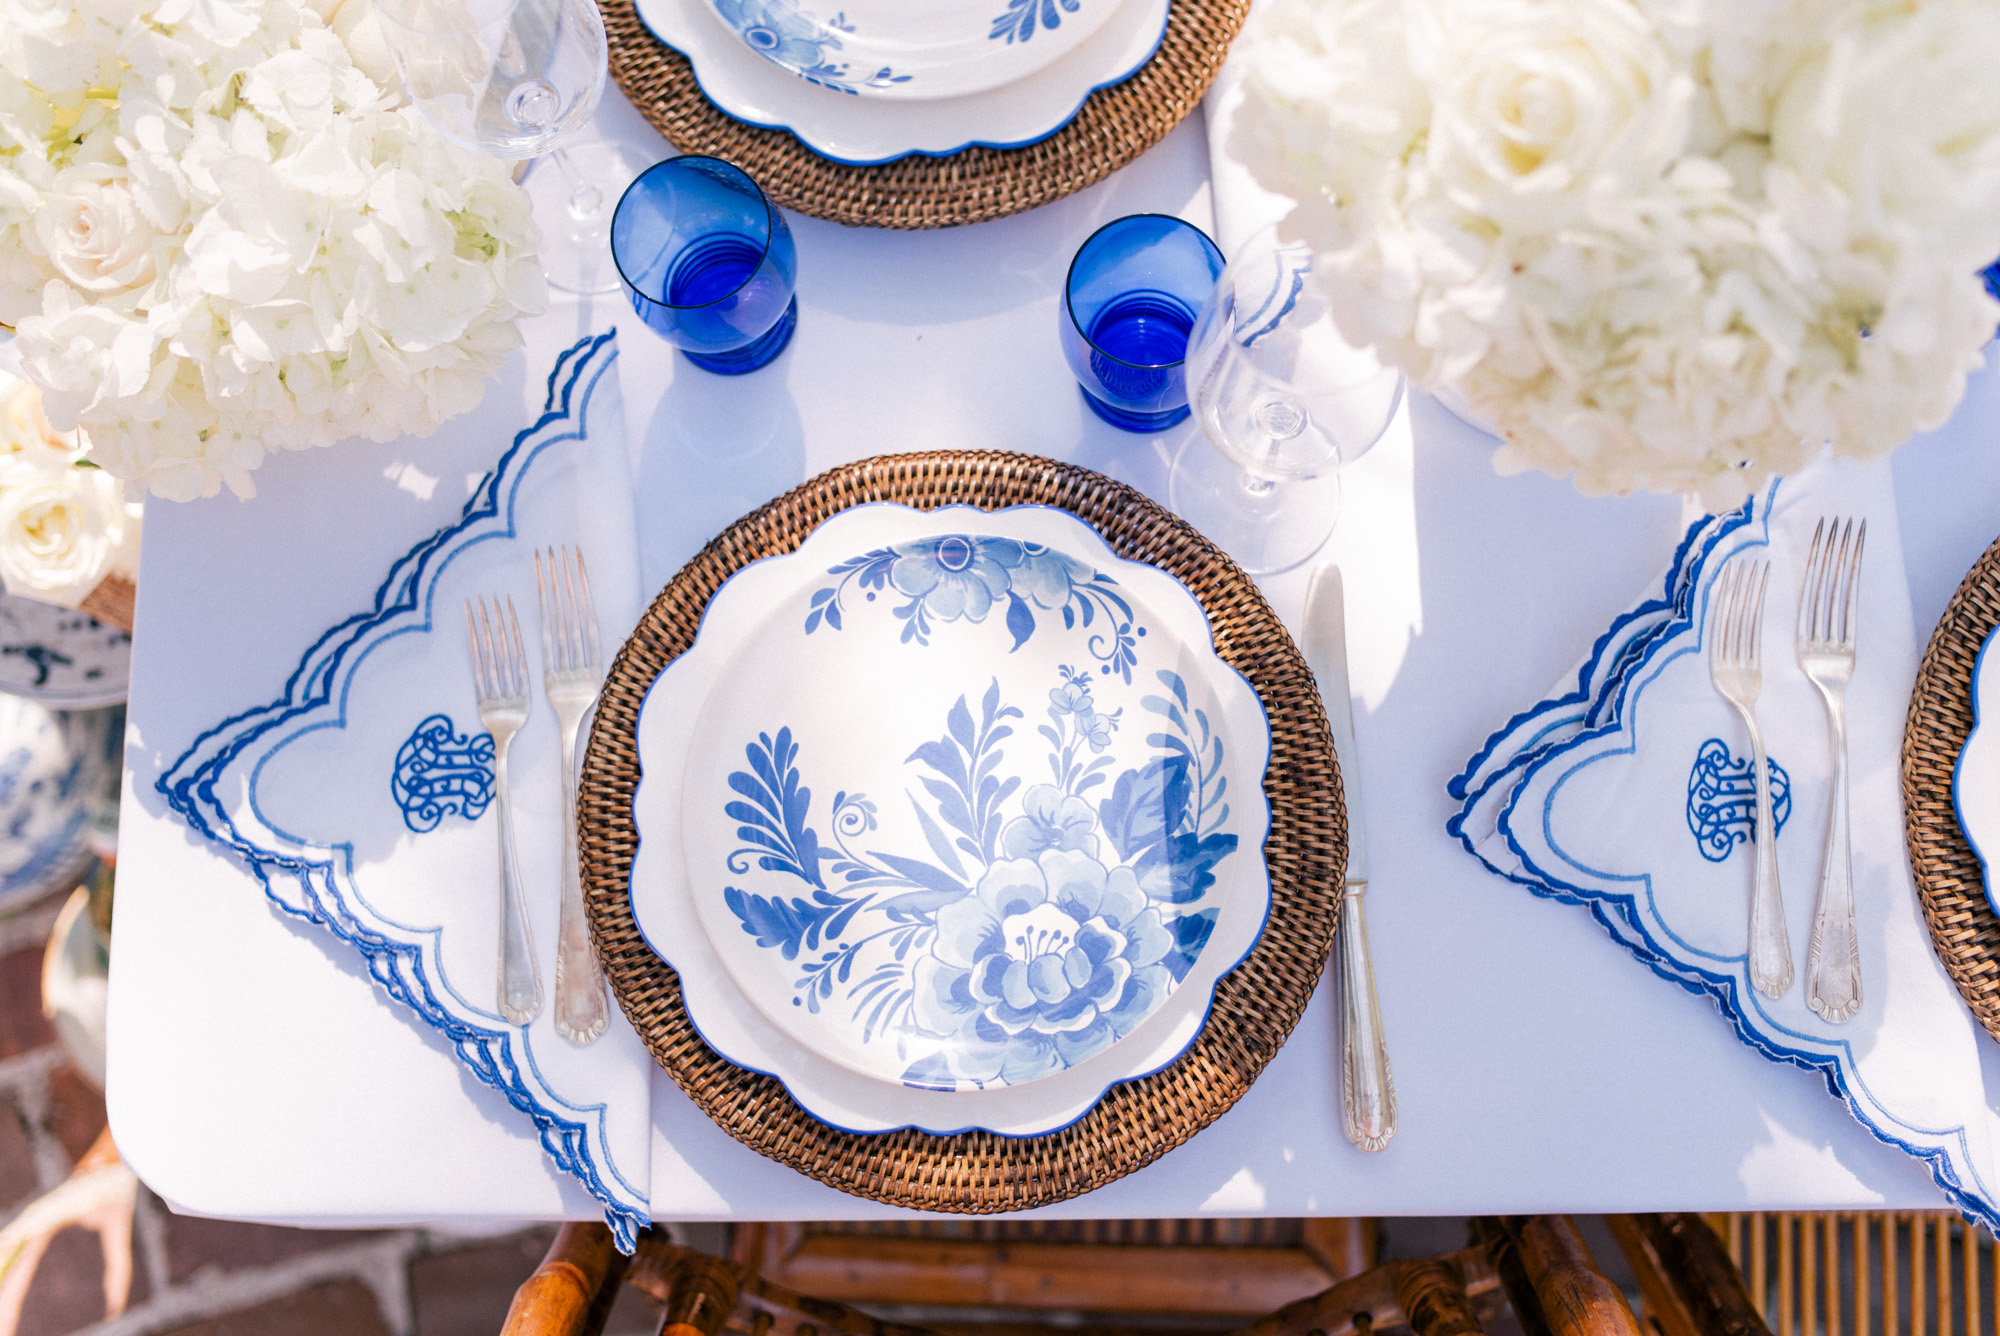 gmg-fourth-of-july-table-1009278